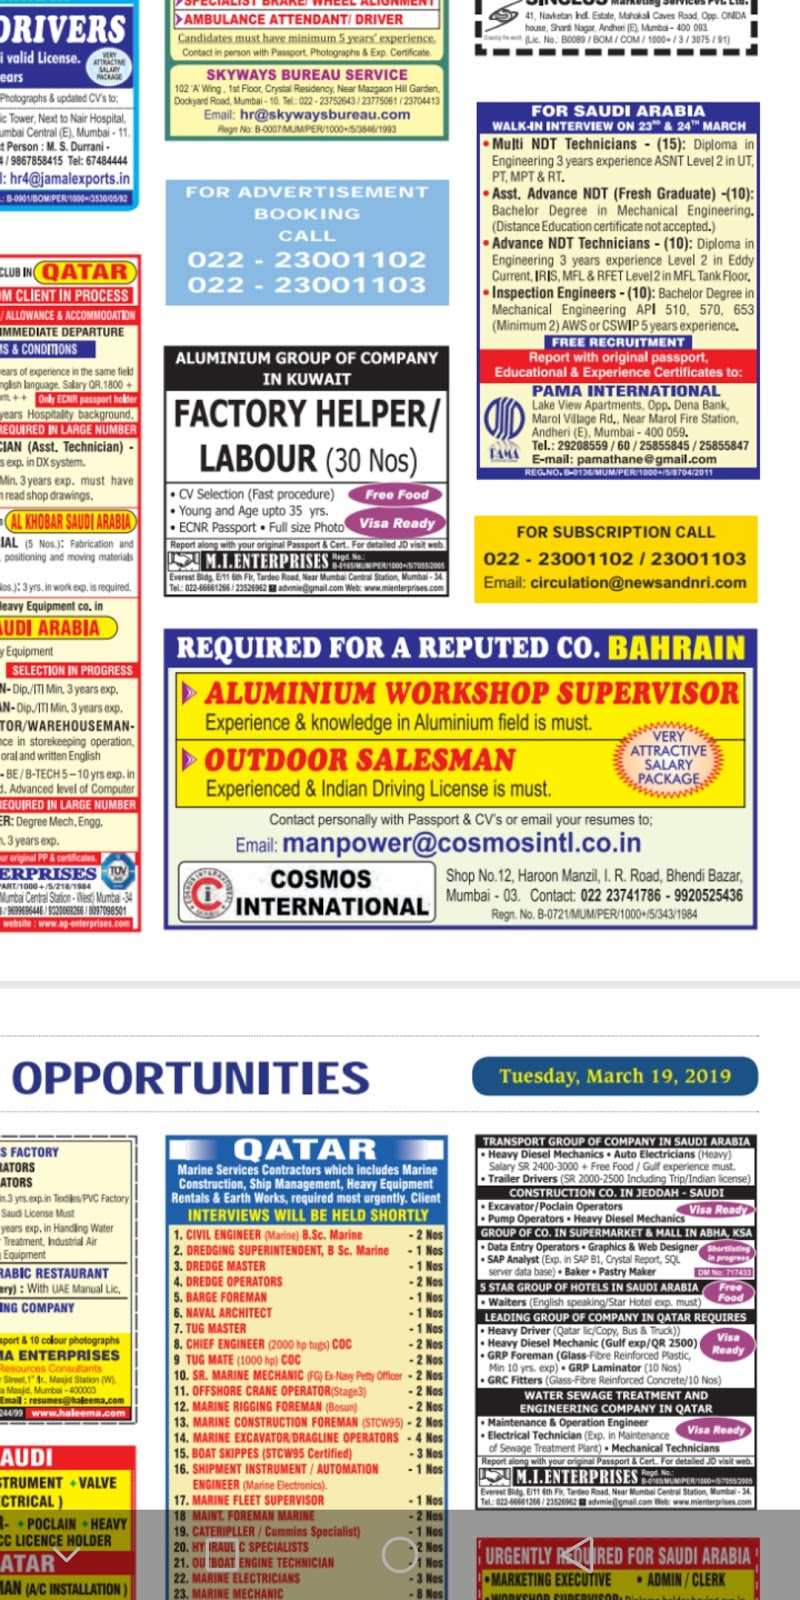 GULF EUROPE - CV SELECTION MULTINATIONAL COMPANY JOB ALL CATEGORY